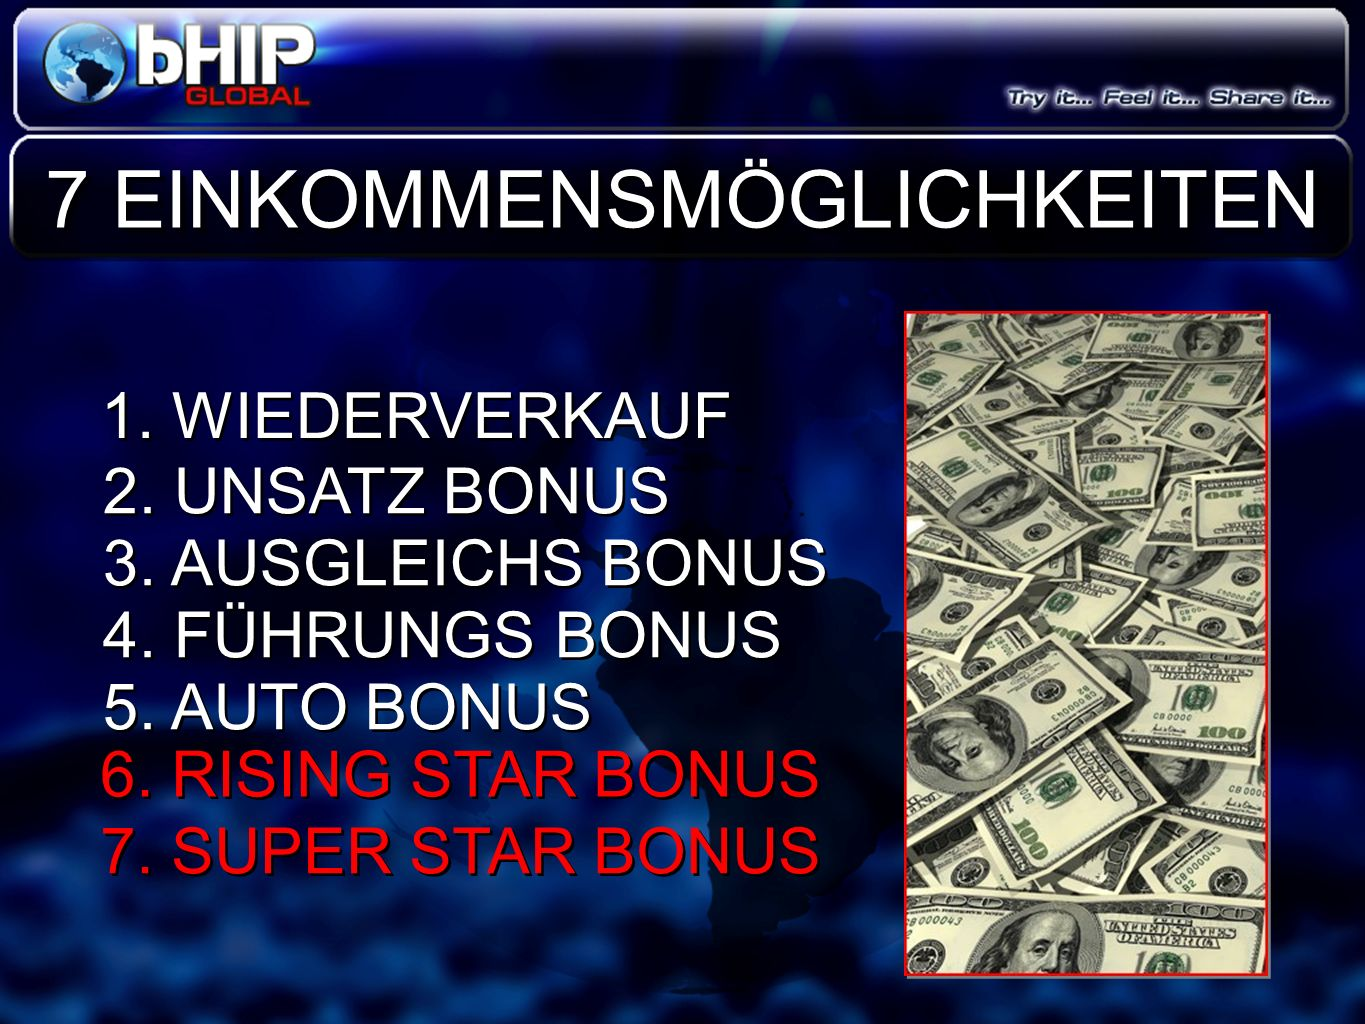 LEADERSHIP RECAP Right Active GL STAR Bonus Leadership Rank 1 STAR (GL) 2 STAR (GL) 3 STAR (GL) 4 STAR (GL) 5 STAR (GL) Diamond (GL) 30 90 250 1,000 2,500 10,000 Total: 1,500,000 30 90 250 1,000 2,500 10,000 $3,000 $7,000 $40,000 $250,000 6 STAR (GL)5,000 $200,000 Left Active GL Leadership Match 20% 10% GL CAR Bonus $500 $750 $1,000 $2,000 $1,500 Double Diamond (GL) 25,000 $1,000,000 Autoship of ONLY $29.95 per month